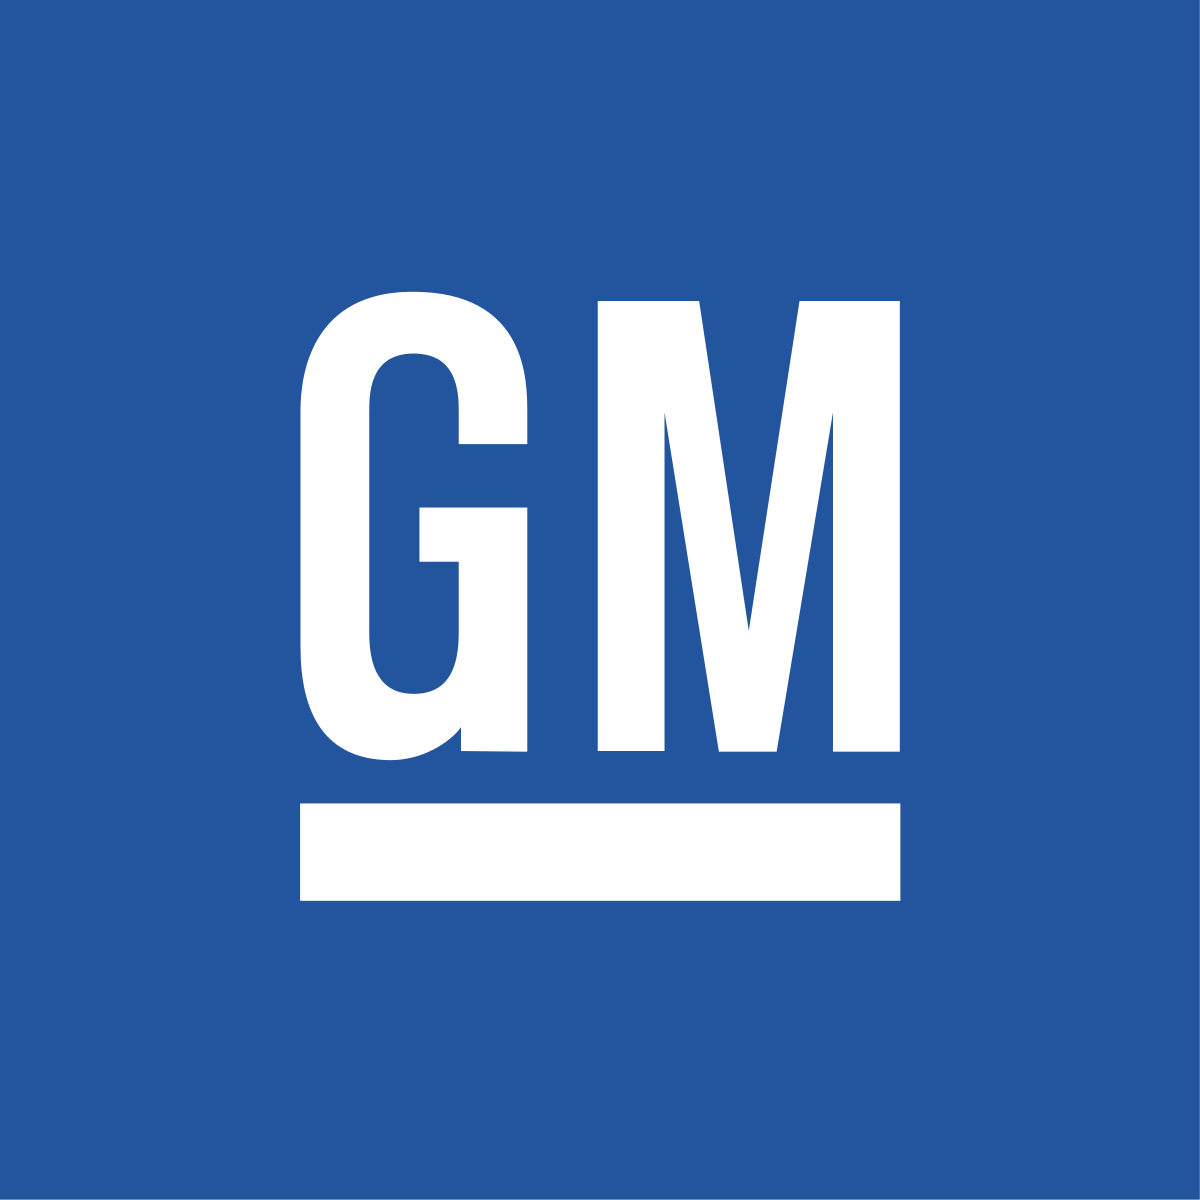 In 1966, General Motors was America's largest corporation.